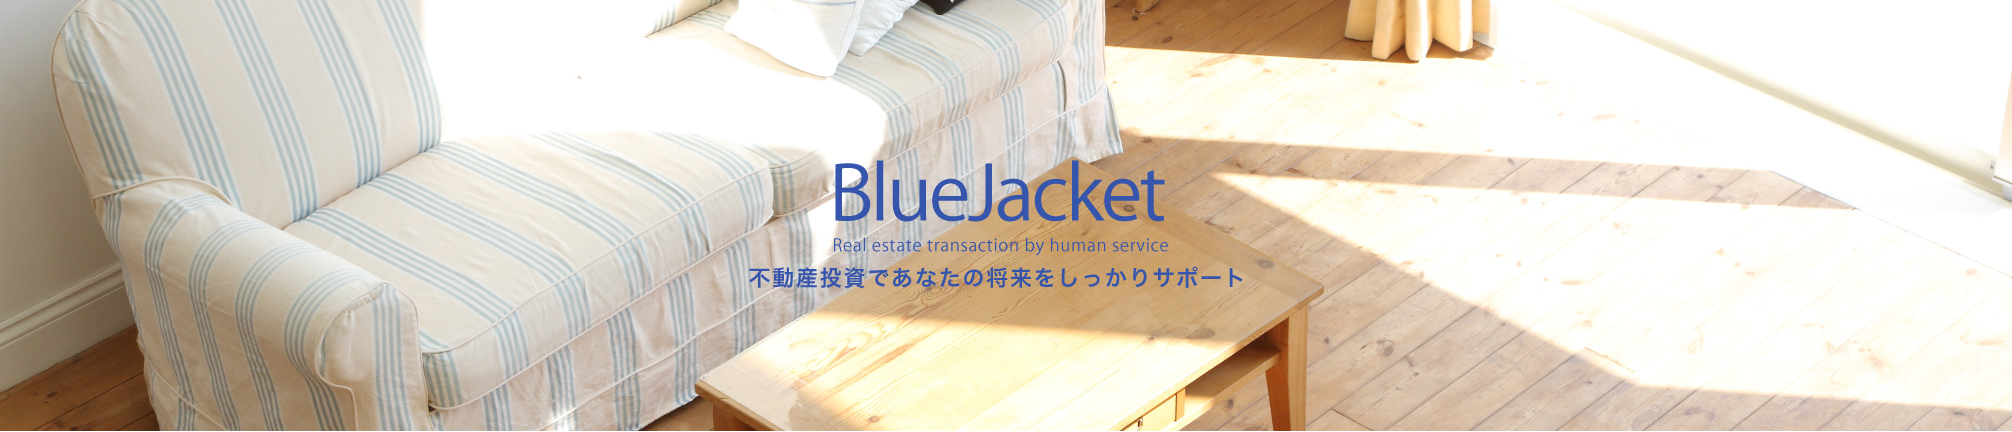 BlueJacket Real estate transaction by human service. 不動産投資であなたの将来をしっかりサポート